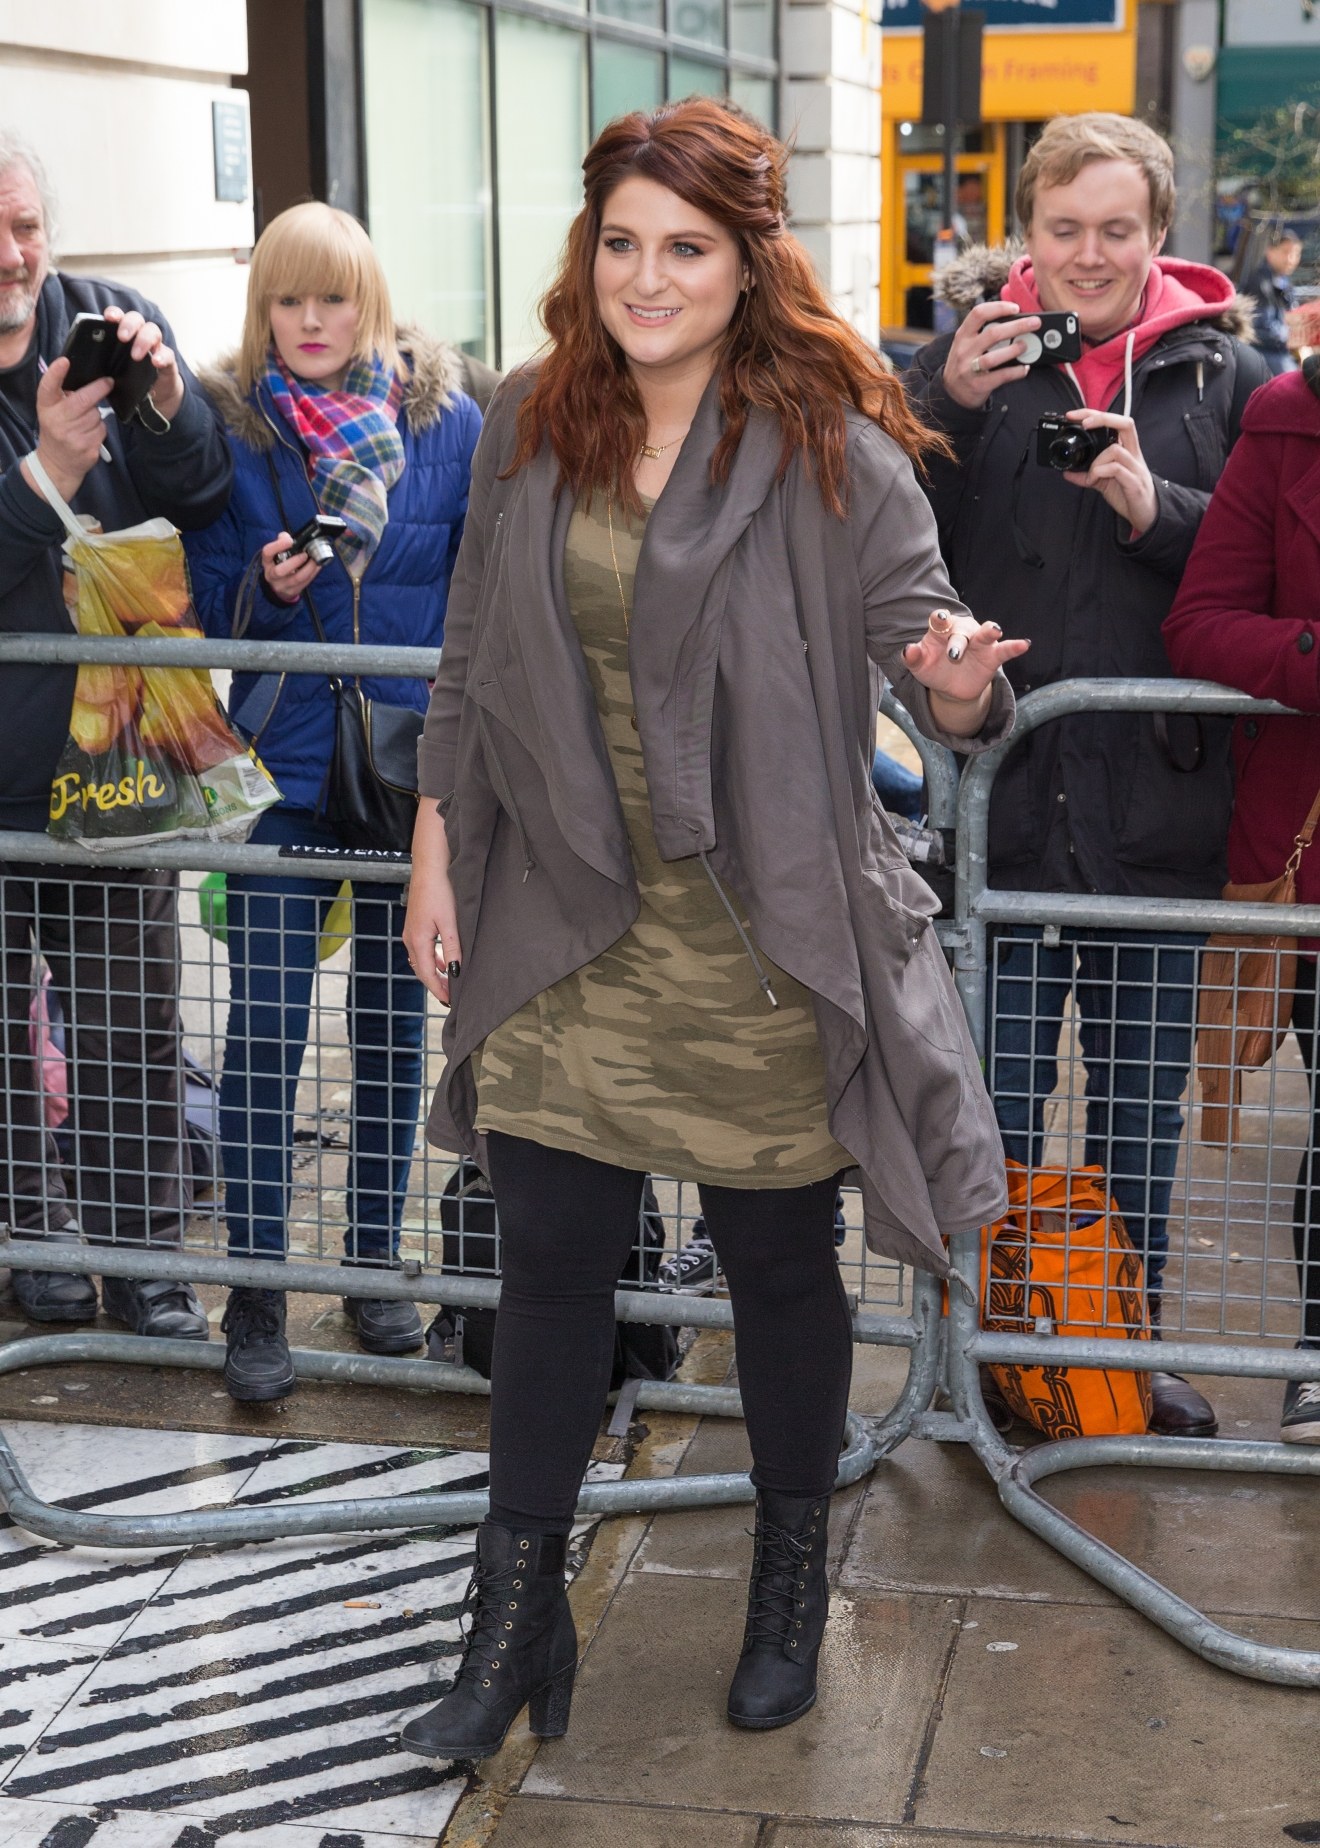 Meghan Trainor arriving at the BBC Radio 2 studios                                    Featuring: Meghan Trainor                  Where: London, United Kingdom                  When: 06 Apr 2016                  Credit: Mario Mitsis/WENN.com